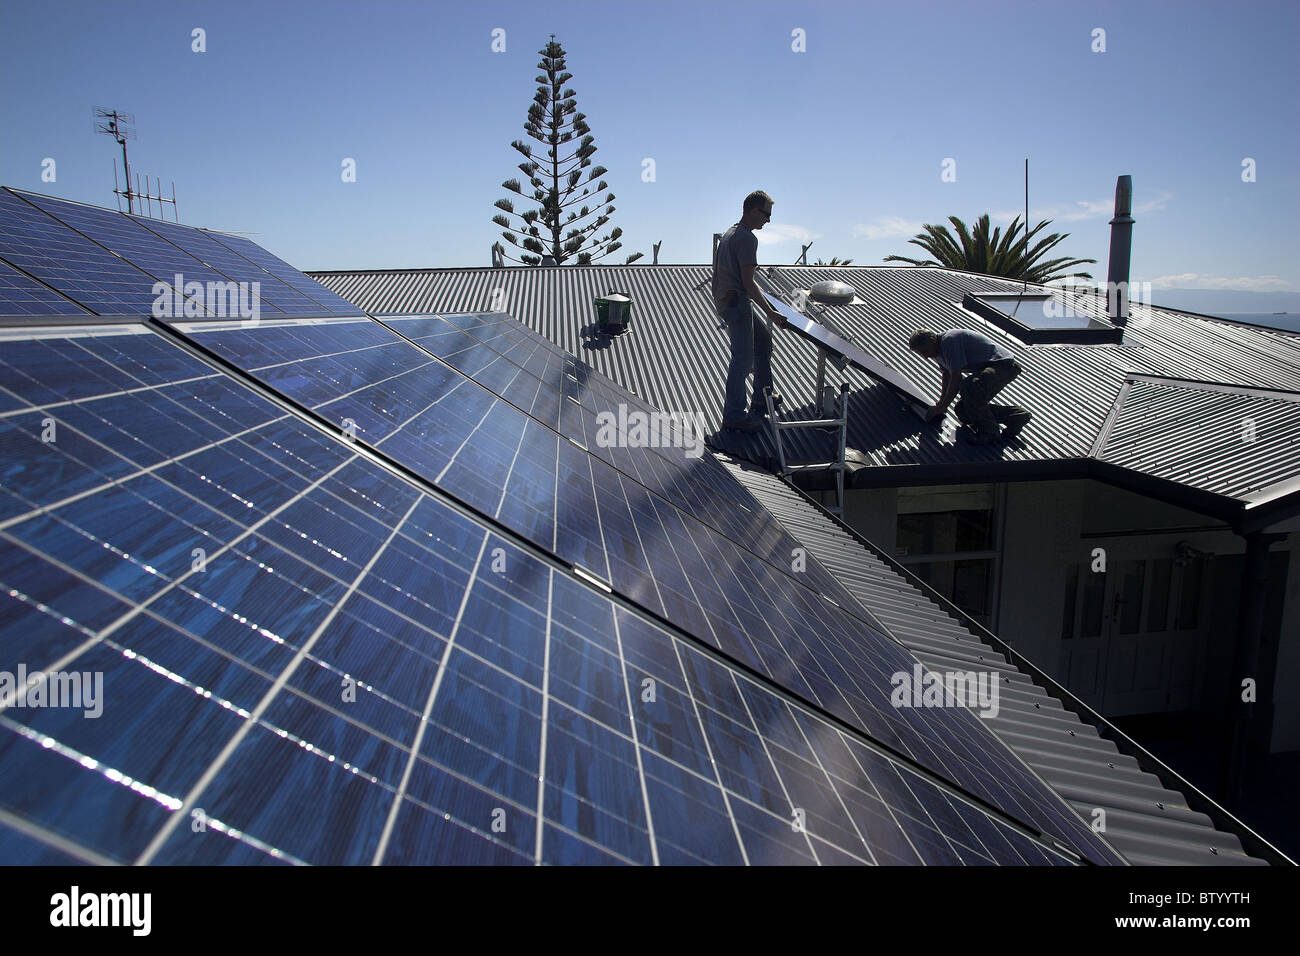 Photovoltaic solar panels being fitted by tradesmen to a house in Nelson, the city with New Zealand's highest - Stock Image